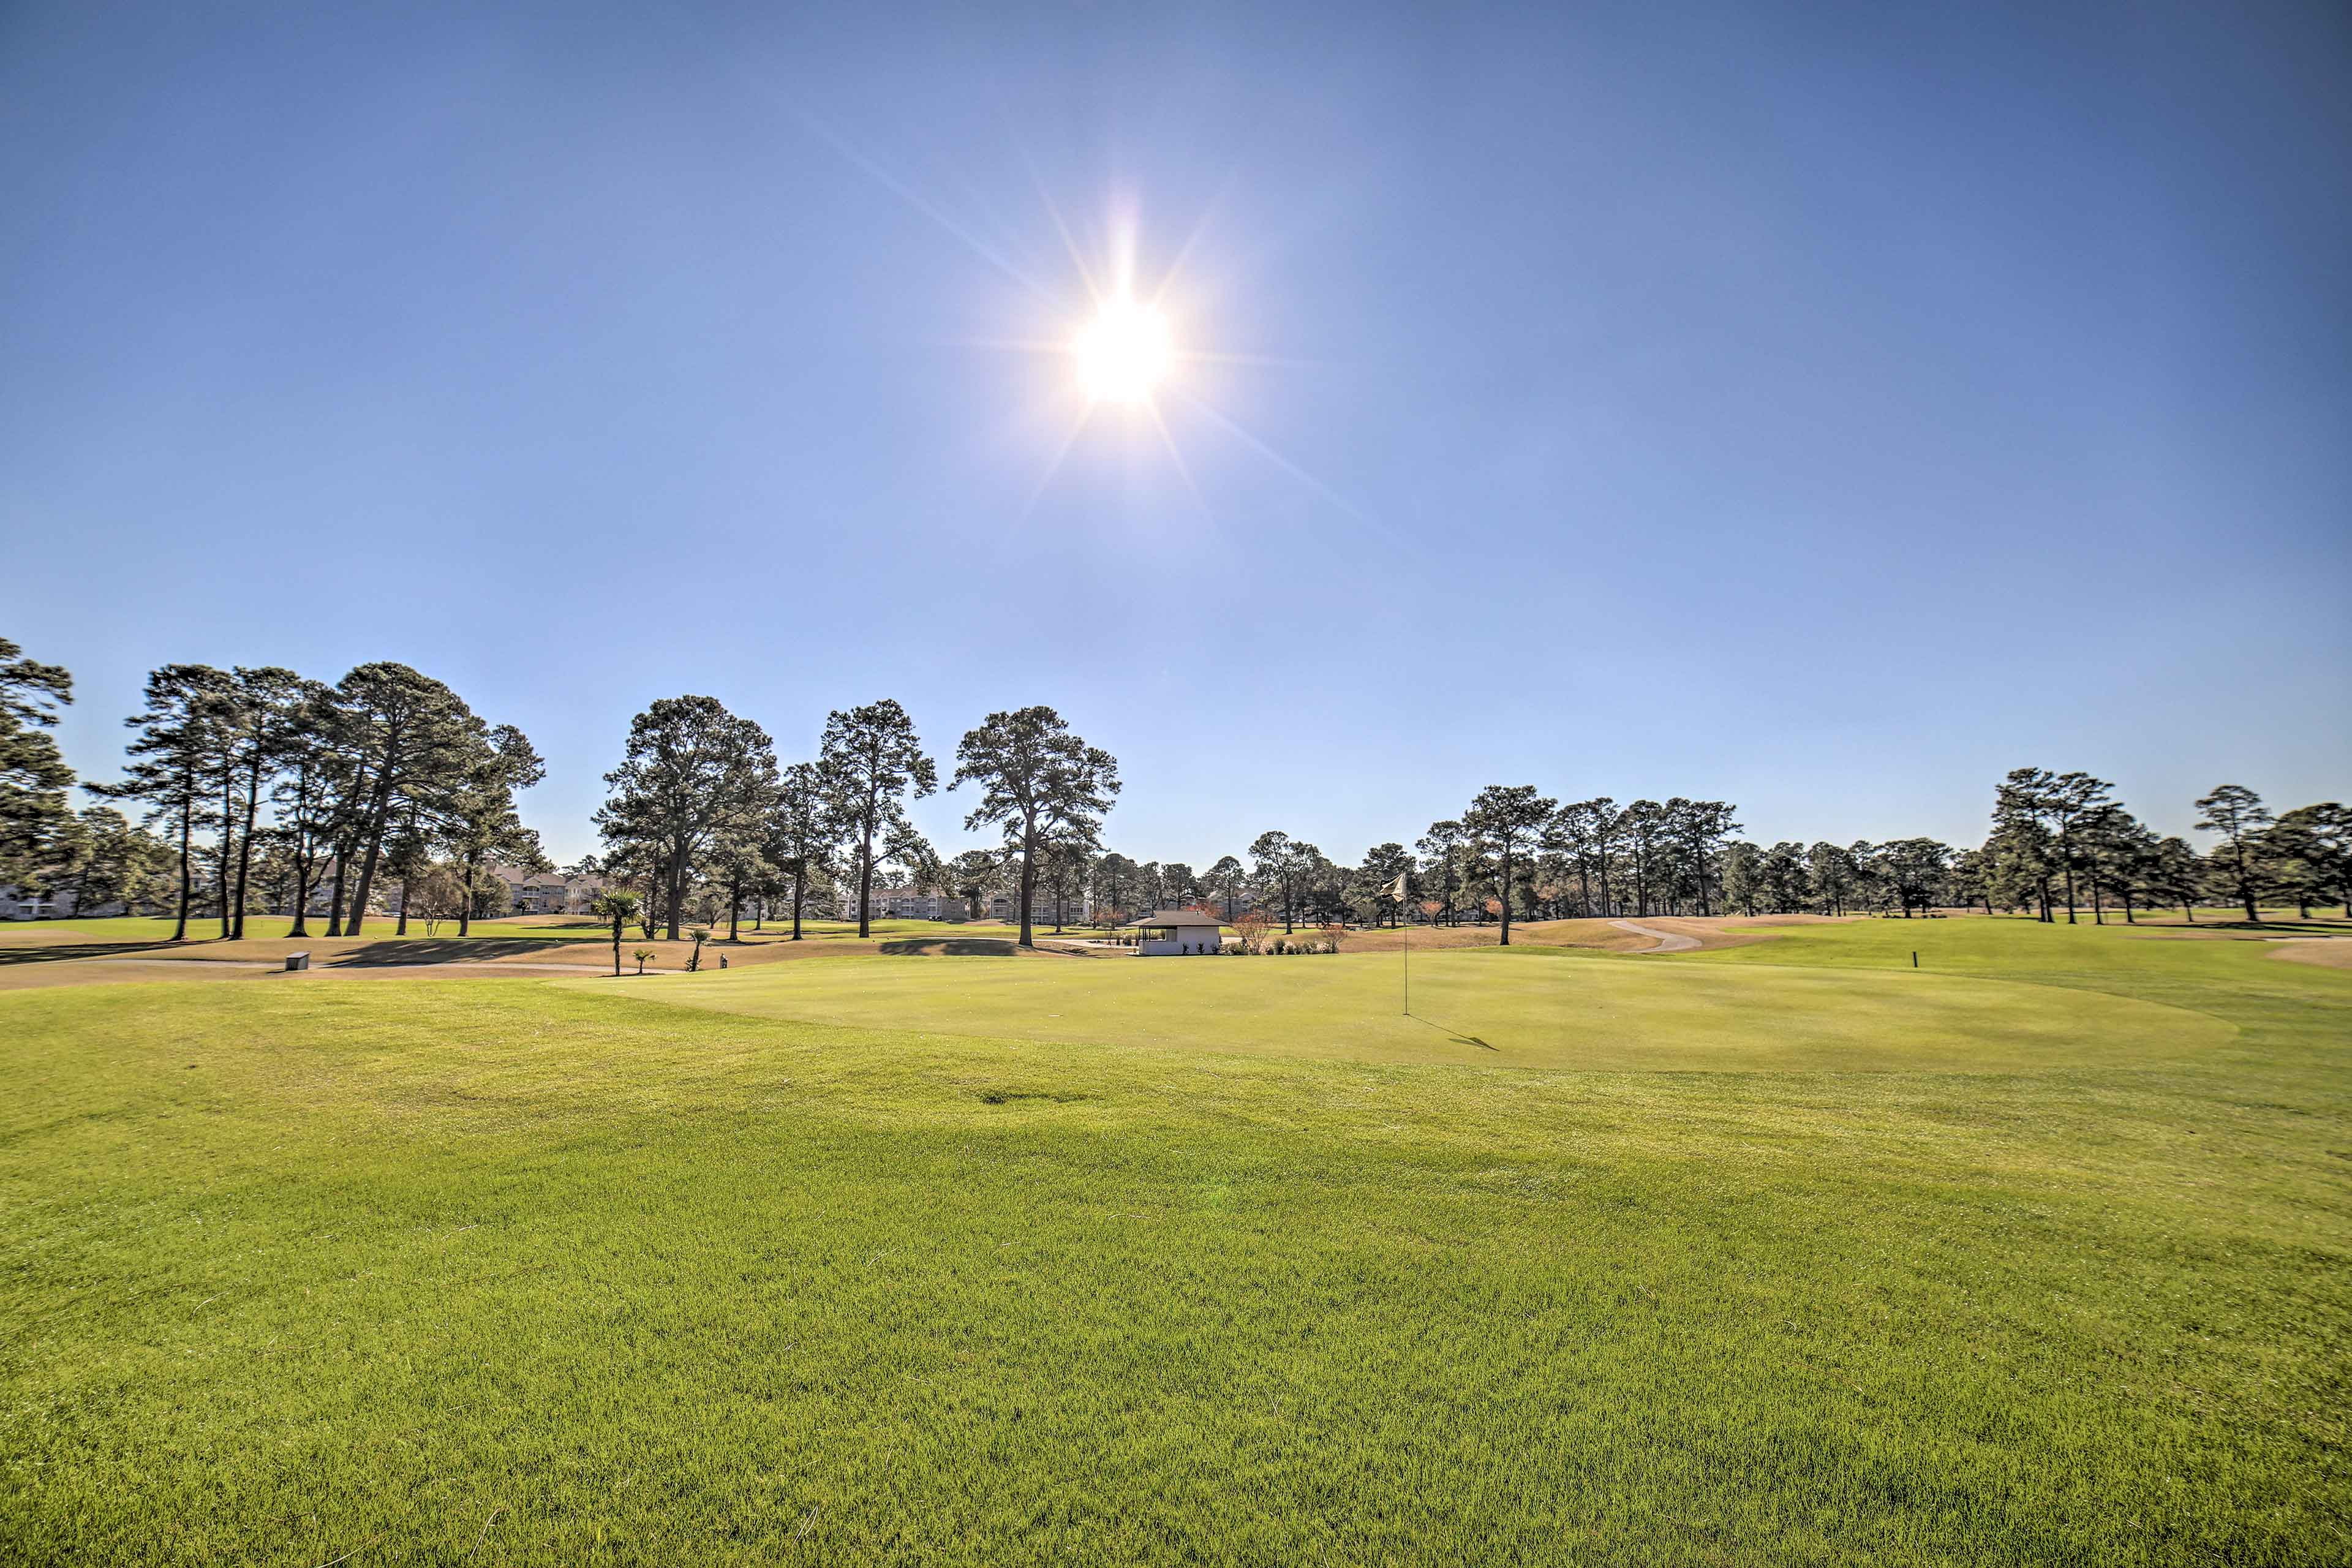 This vacation rental is perched on the edge of the Myrtlewood Golf Club.